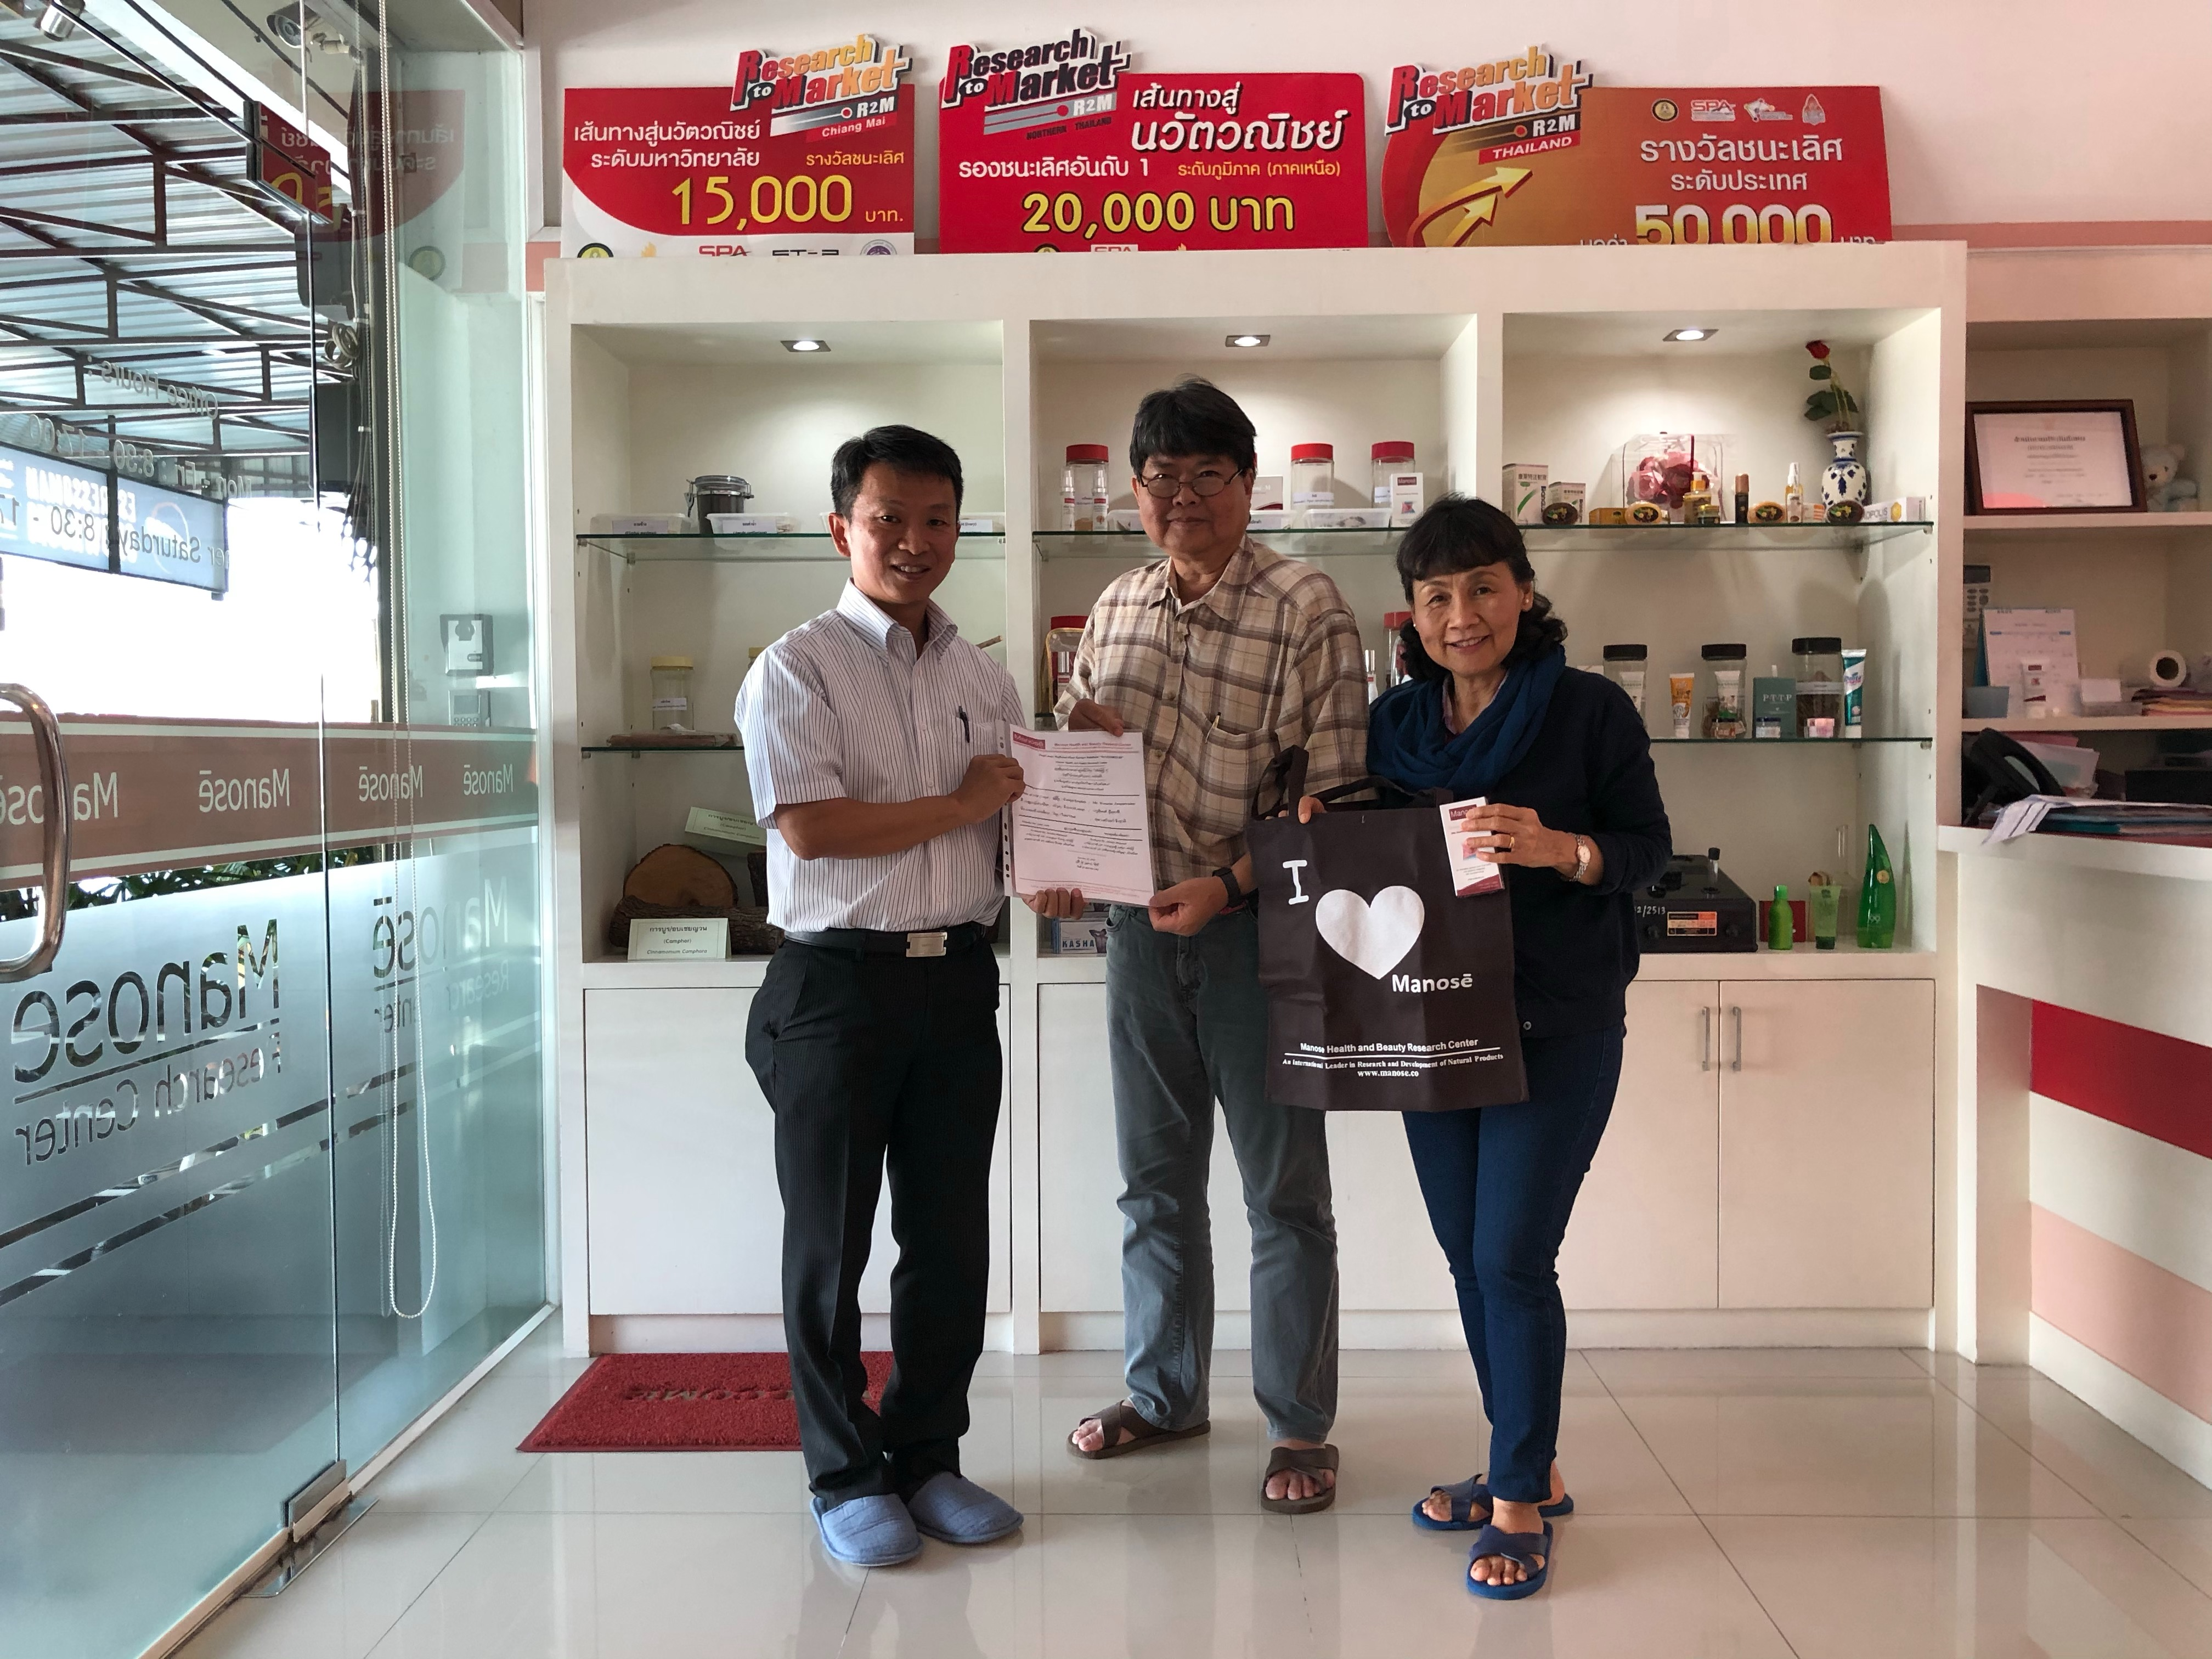 Mr. Wasarin Jungsuwadee from M Technologies (Thailand) Ltd. has visited Manose Health and Beauty Research Center